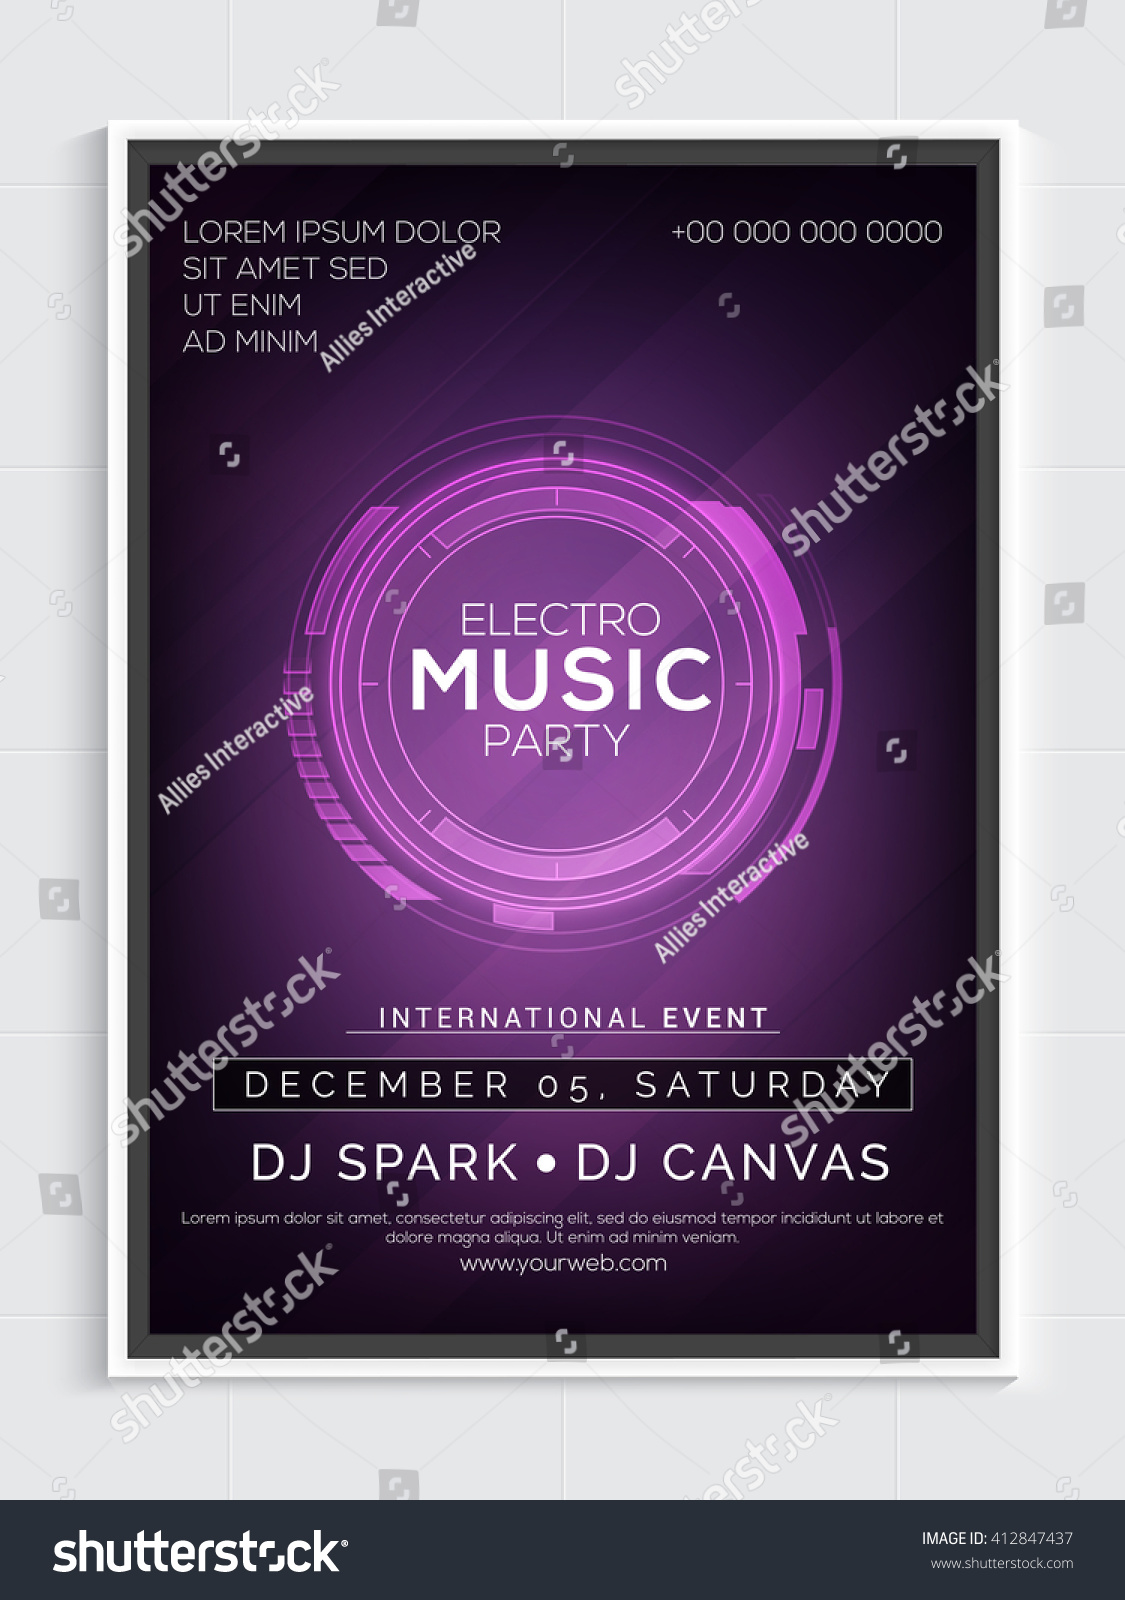 Electro Music Party Template Dance Party Stock Vector 412847437 ...